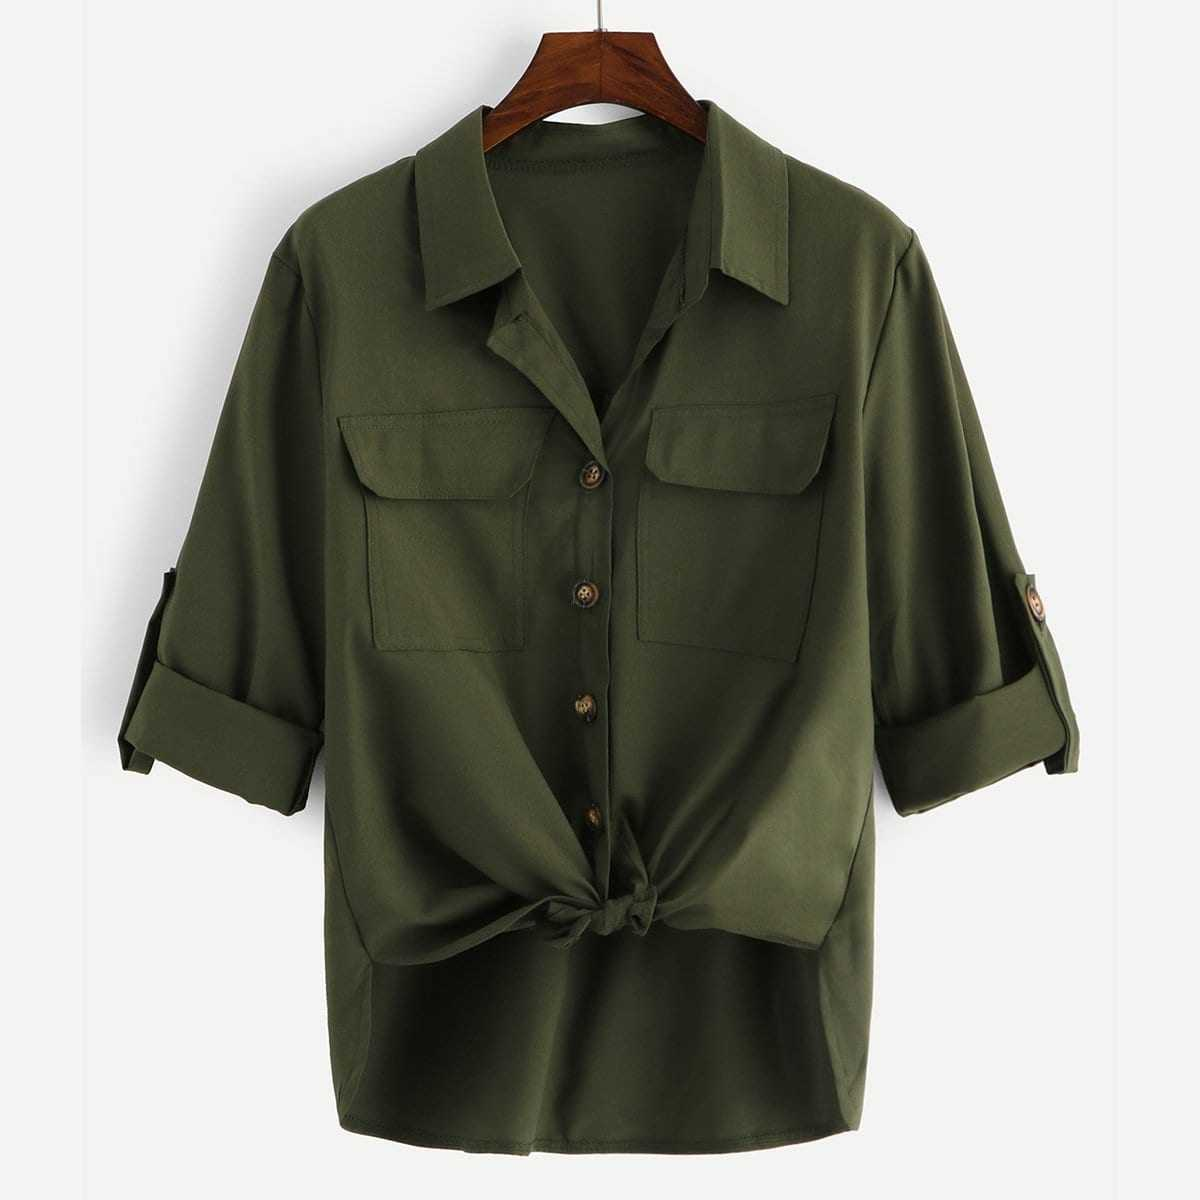 Roll Tab Pocket Knot Utility Shirt in Army Green by ROMWE on GOOFASH